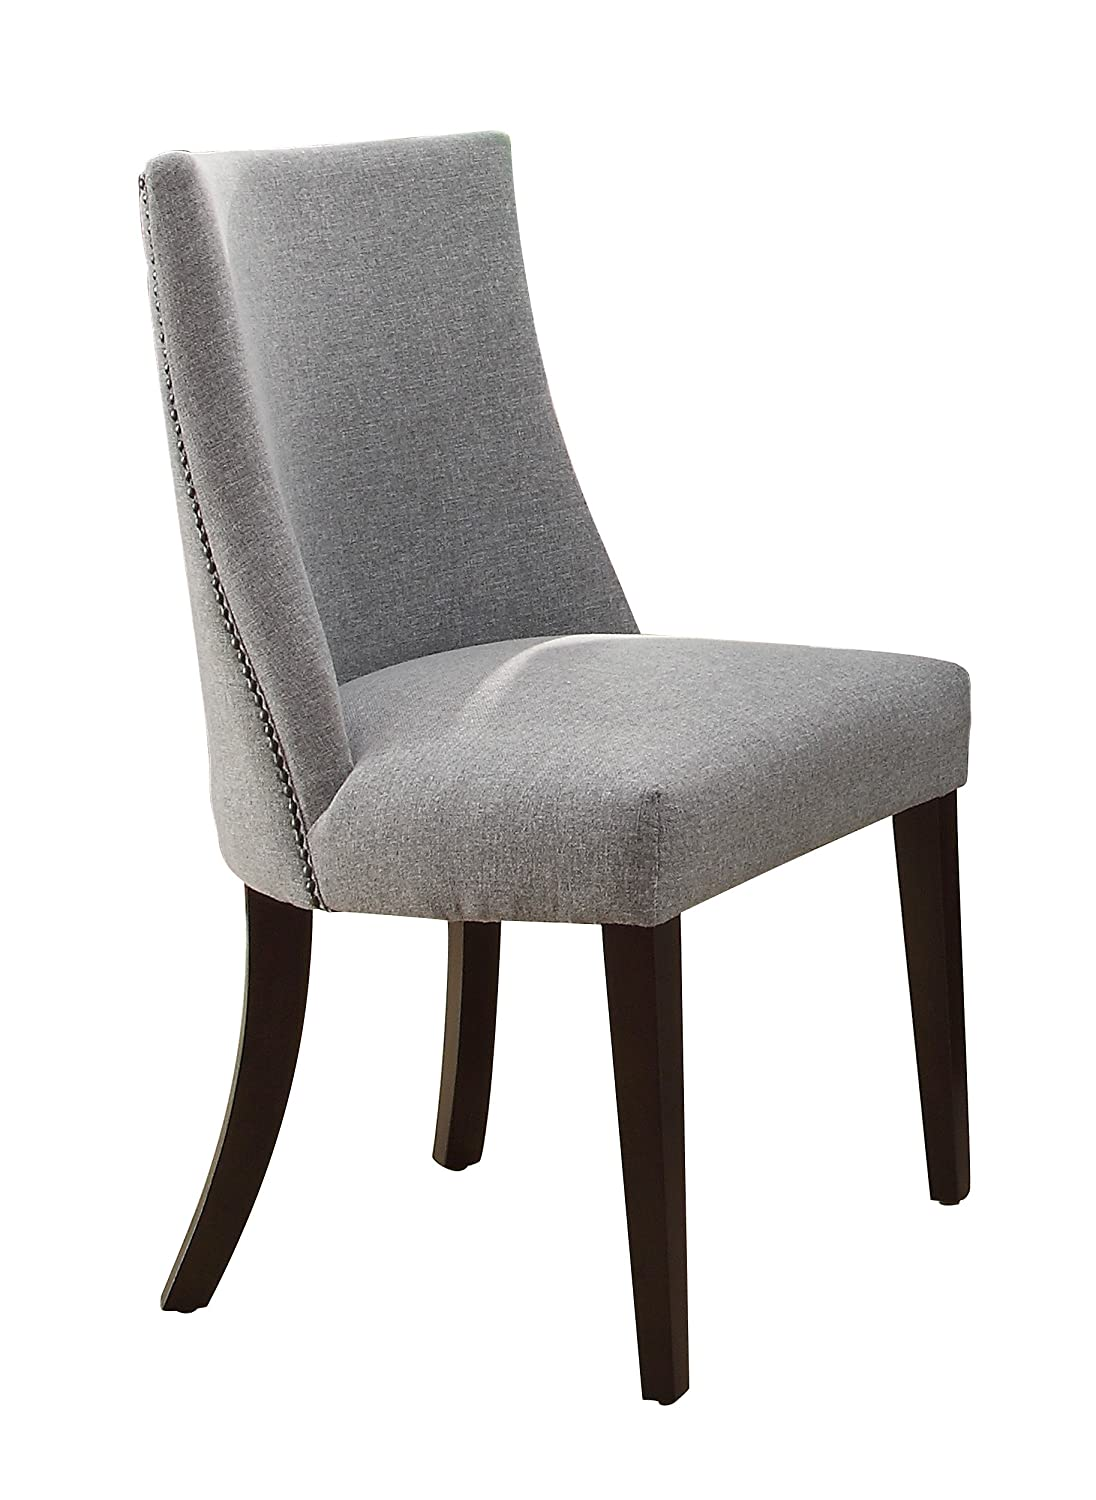 grey wood dining chairs. Amazon.com - Homelegance 2588S Accent/Dining Chair (Set Of 2), Blue/Grey Chairs Grey Wood Dining